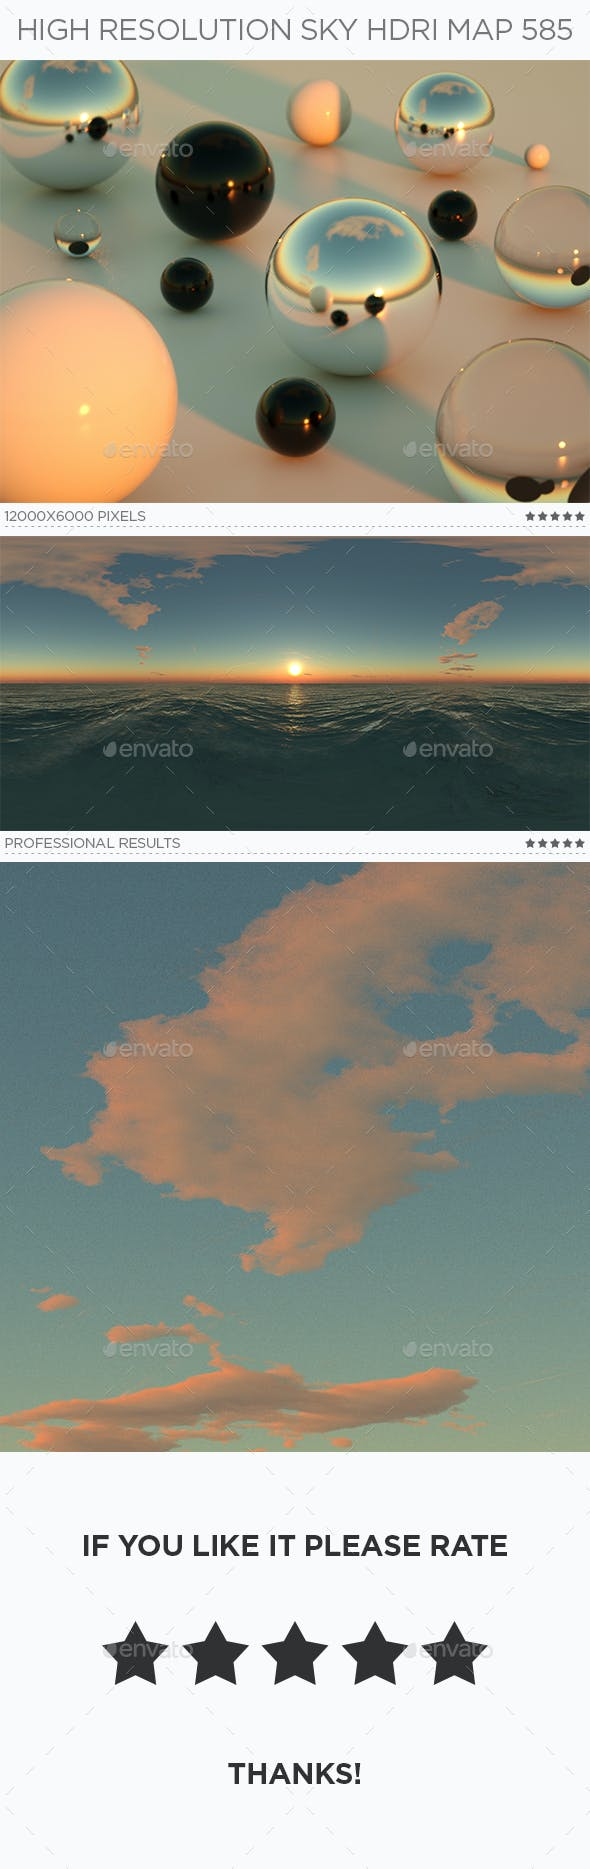 High Resolution Sky HDRi Map 585 - 3DOcean Item for Sale